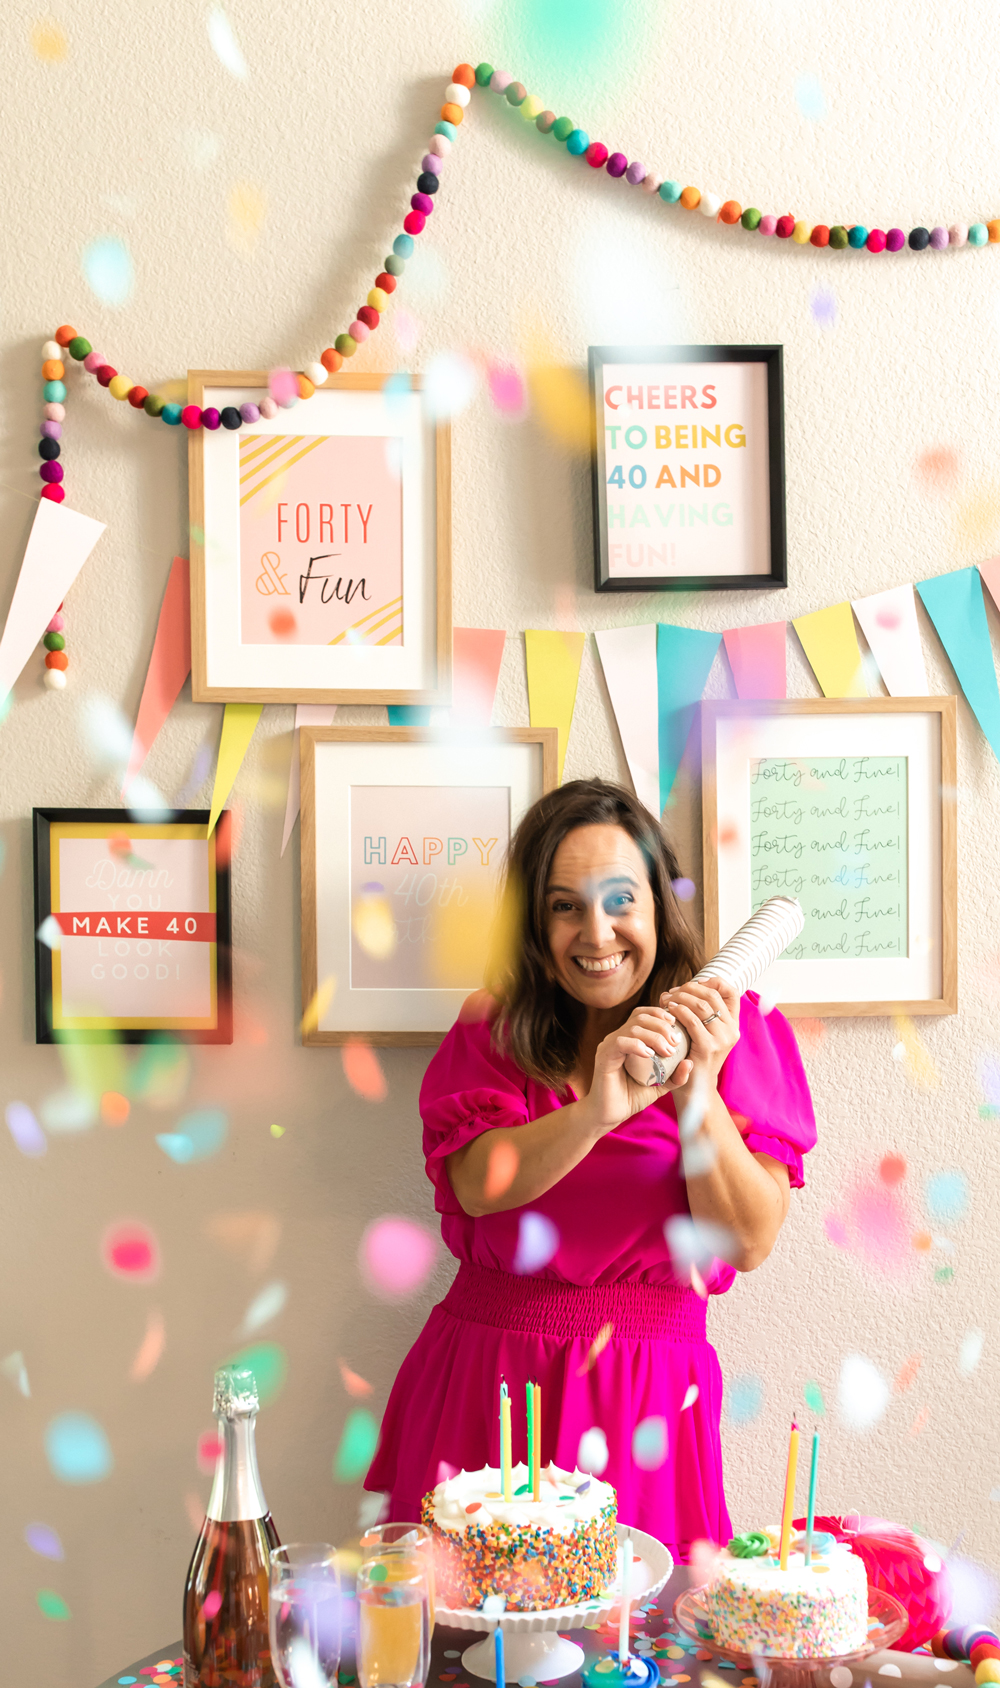 40th birthday party games & activities ideas